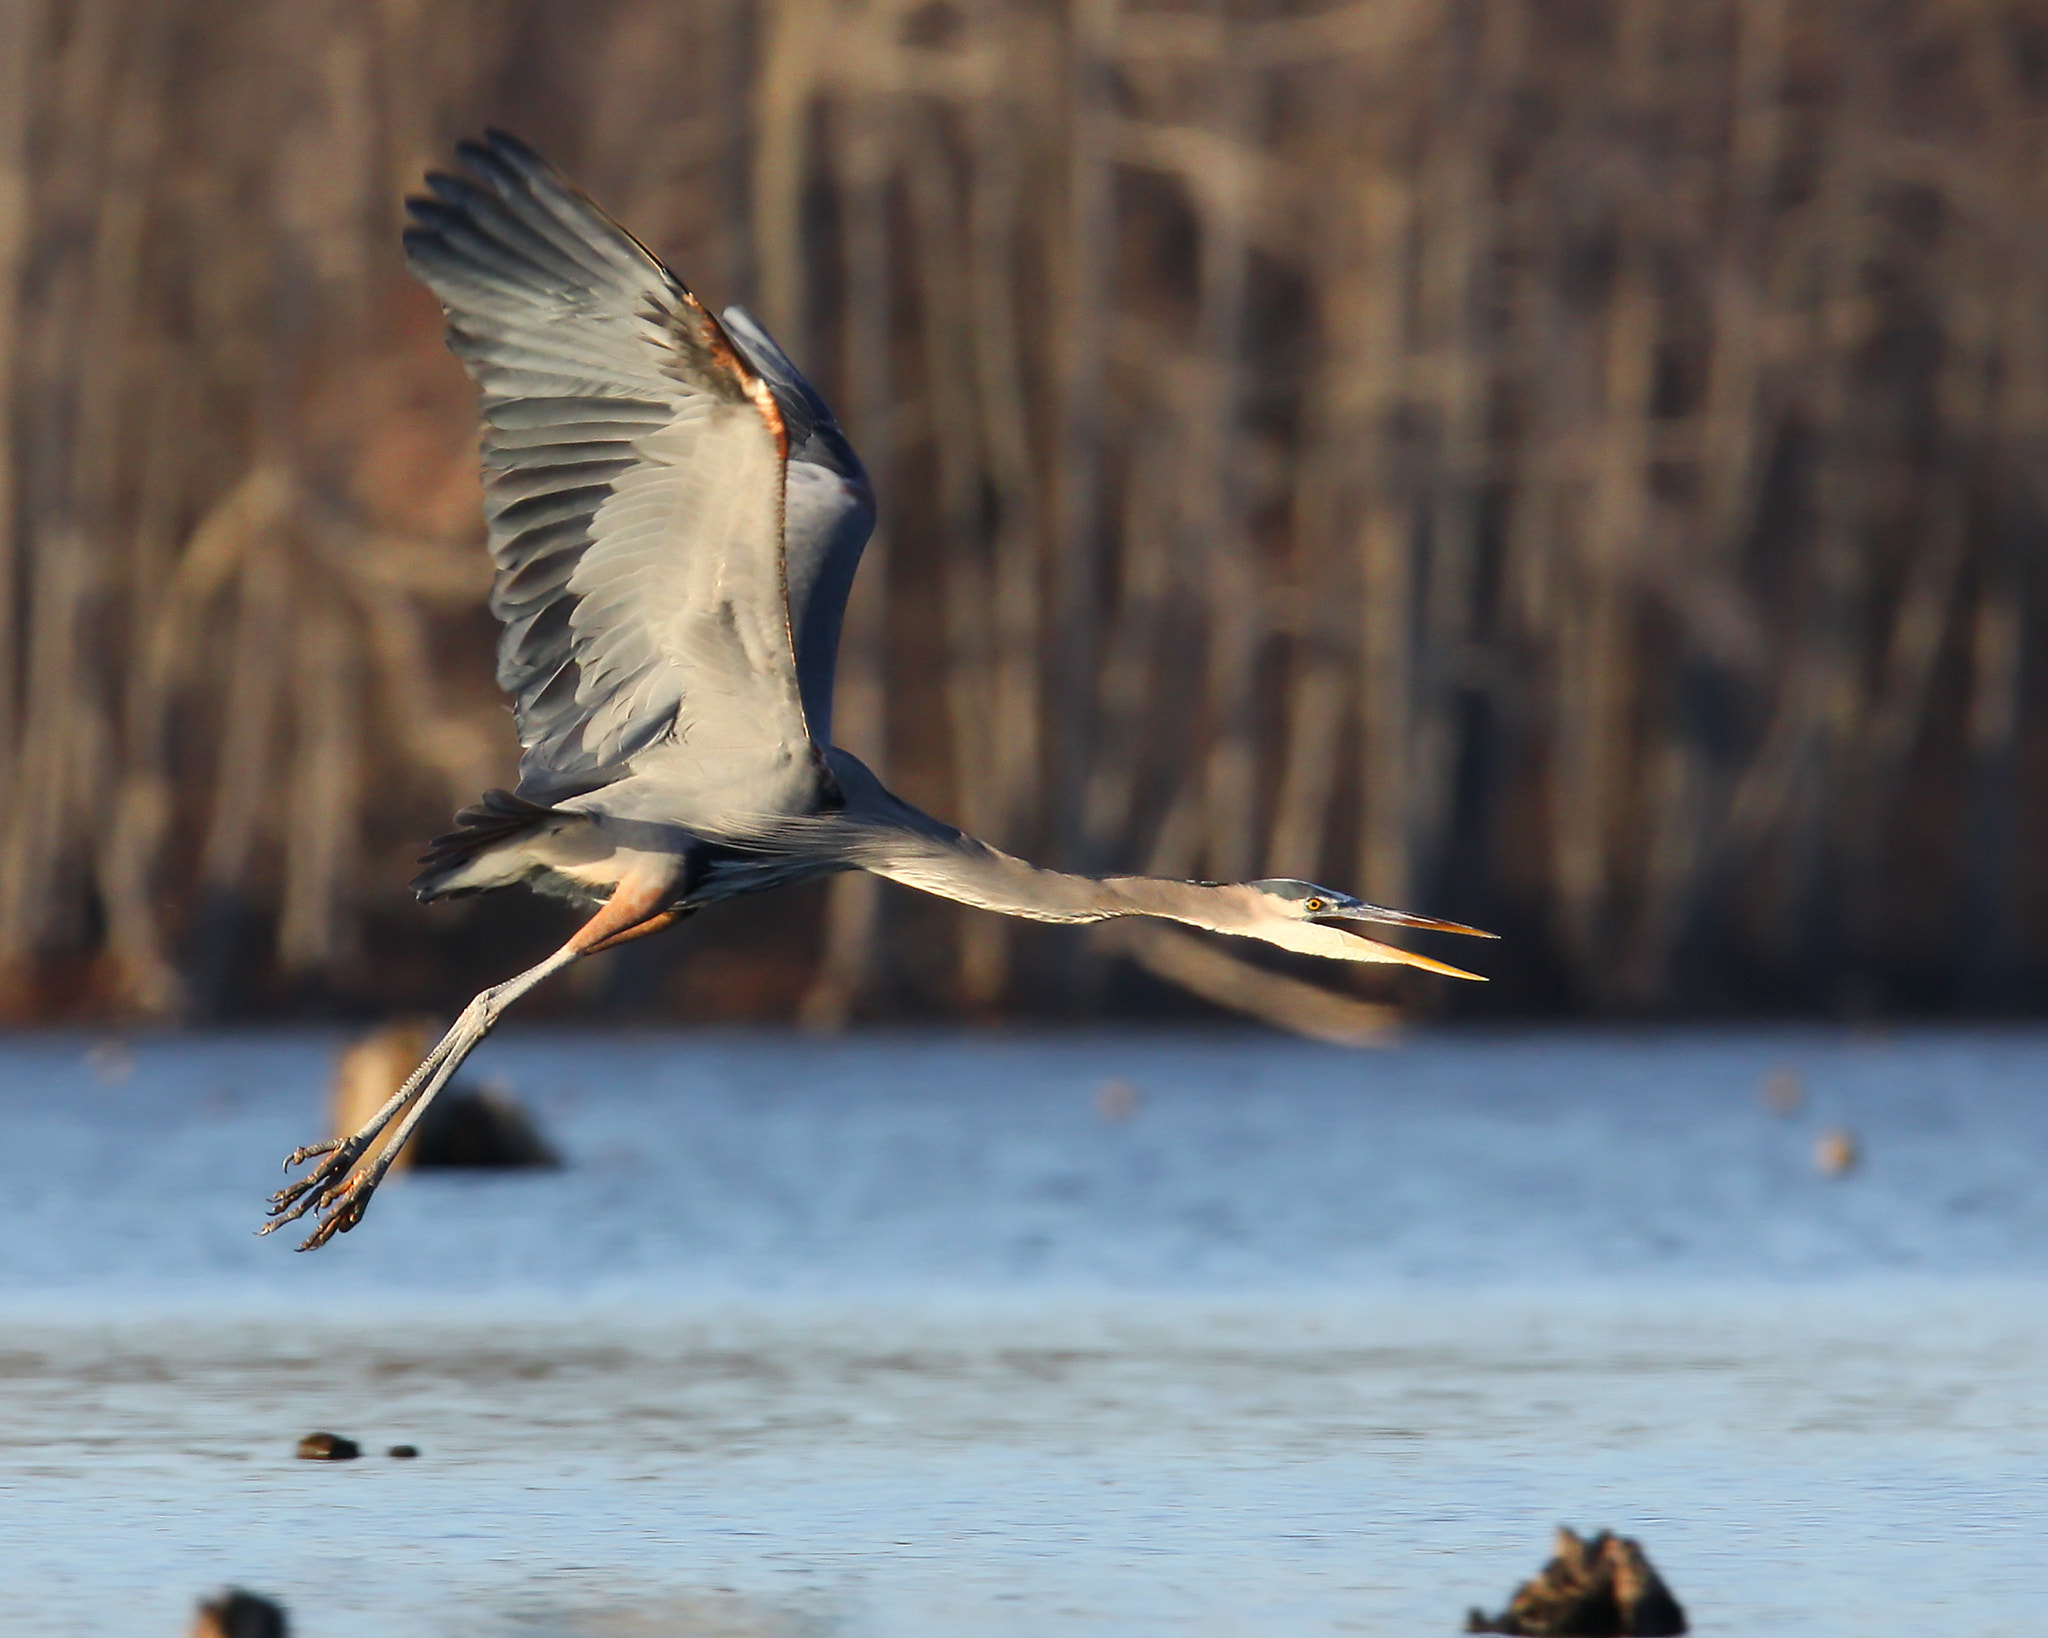 Photograph Great Blue Heron by Chris Newberry on 500px